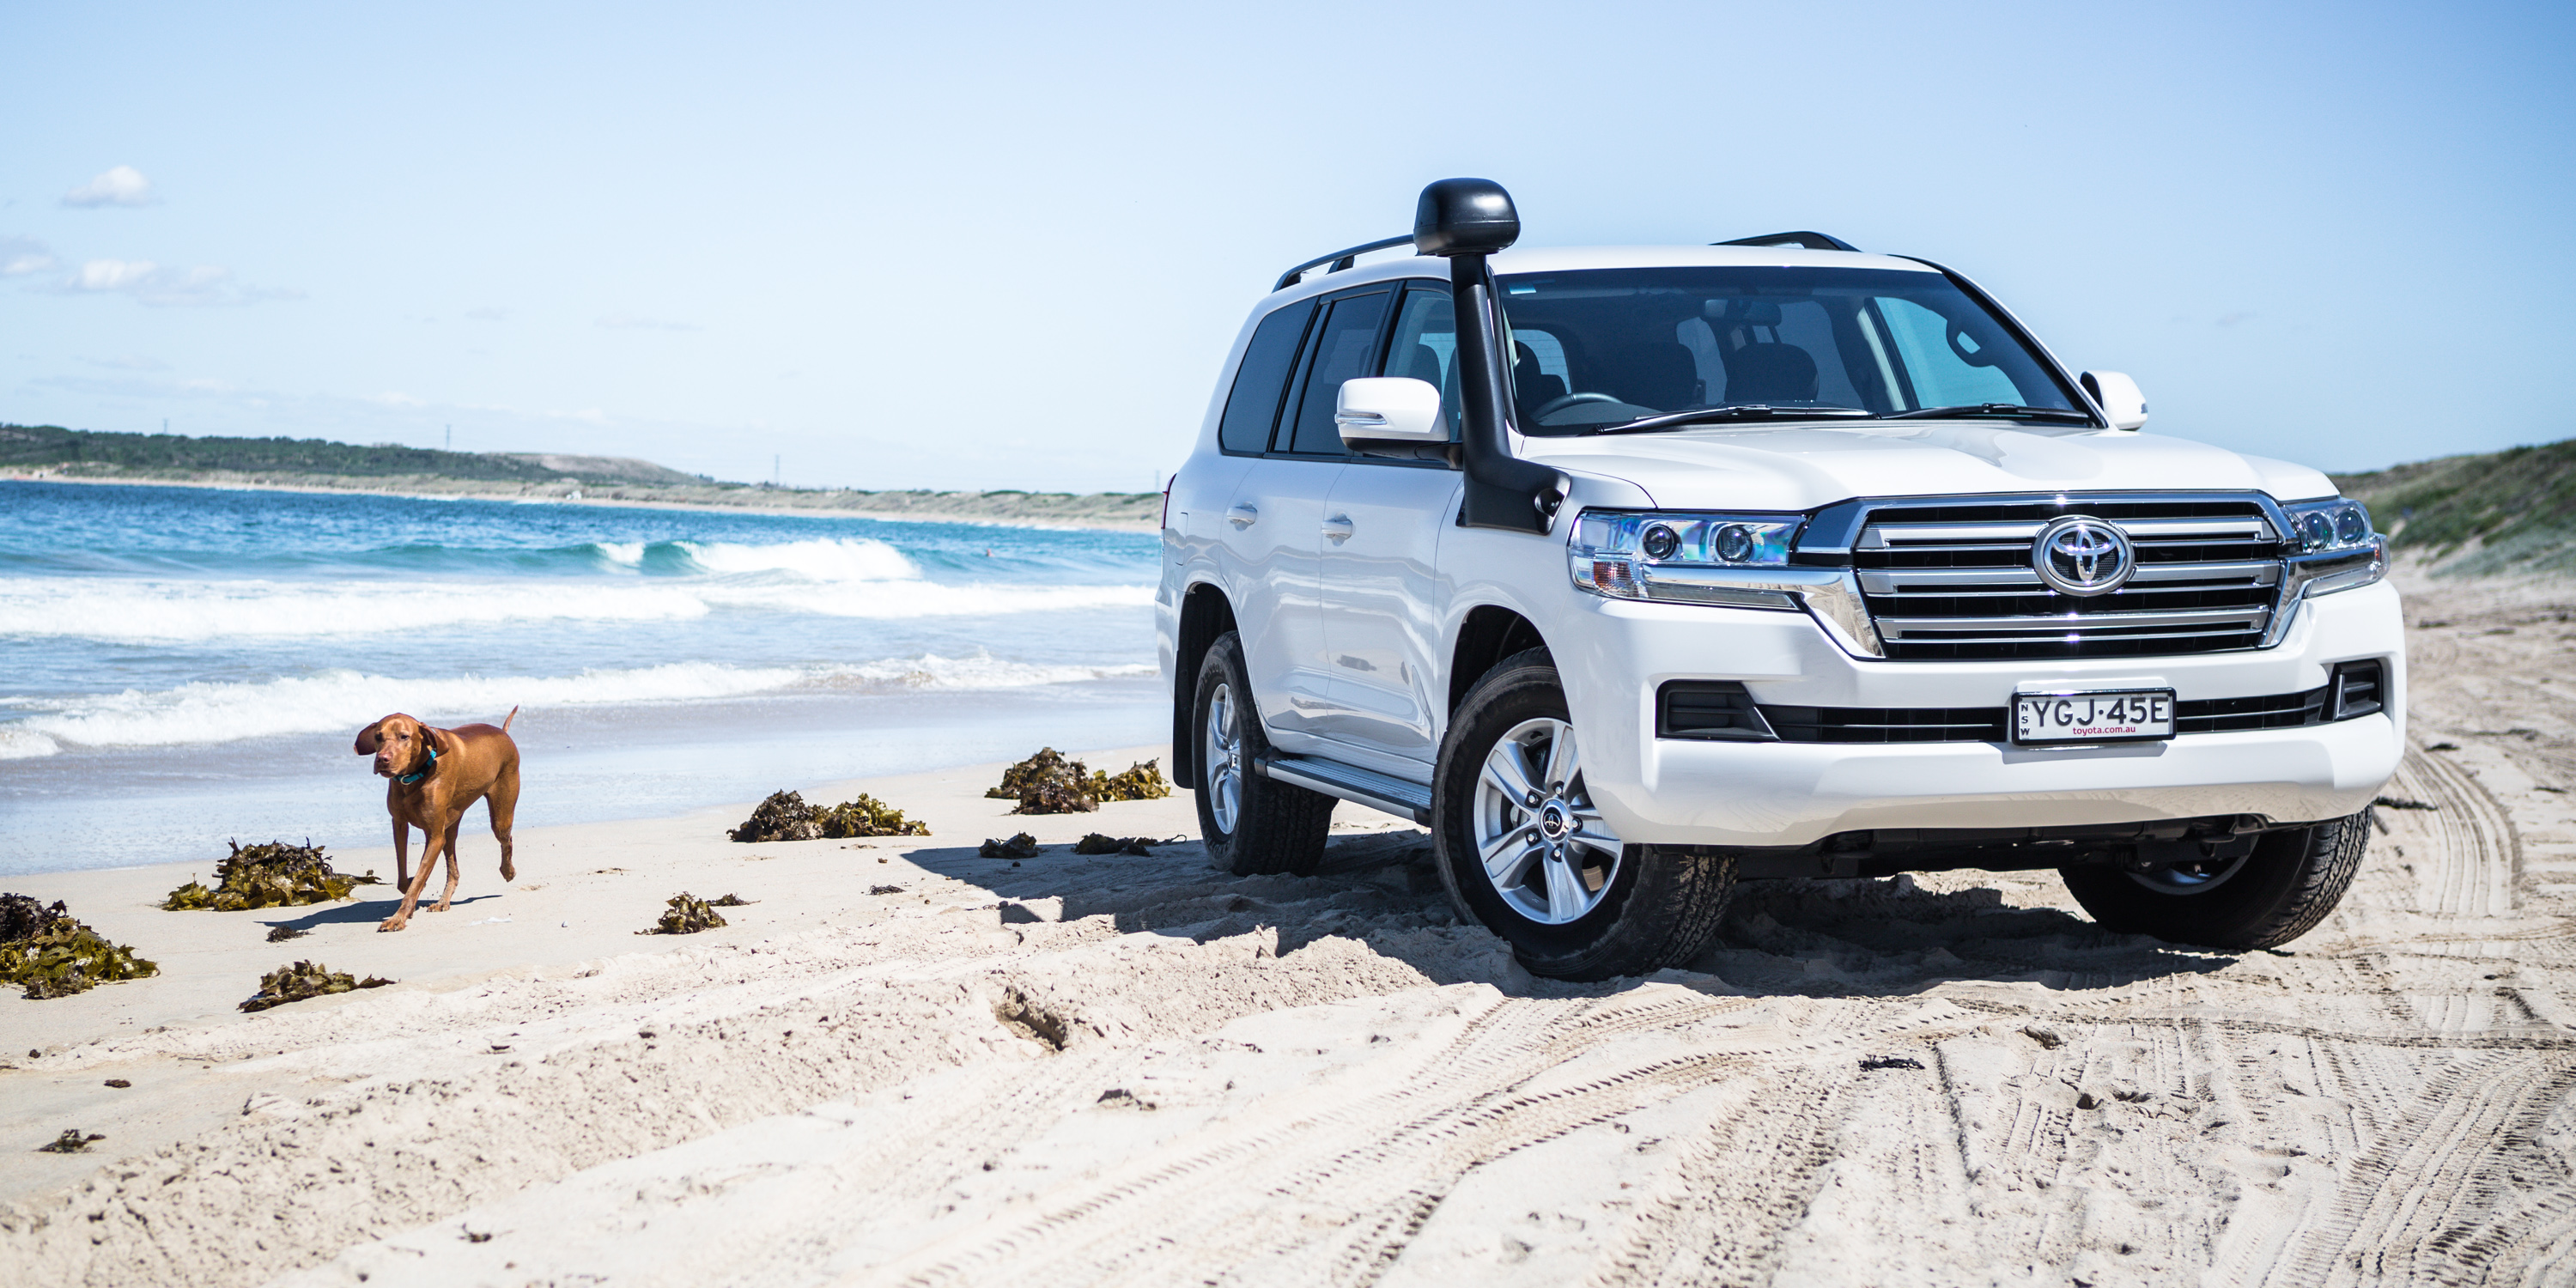 Model 2016 Toyota LandCruiser 200 GXL Diesel Review  CarAdvice